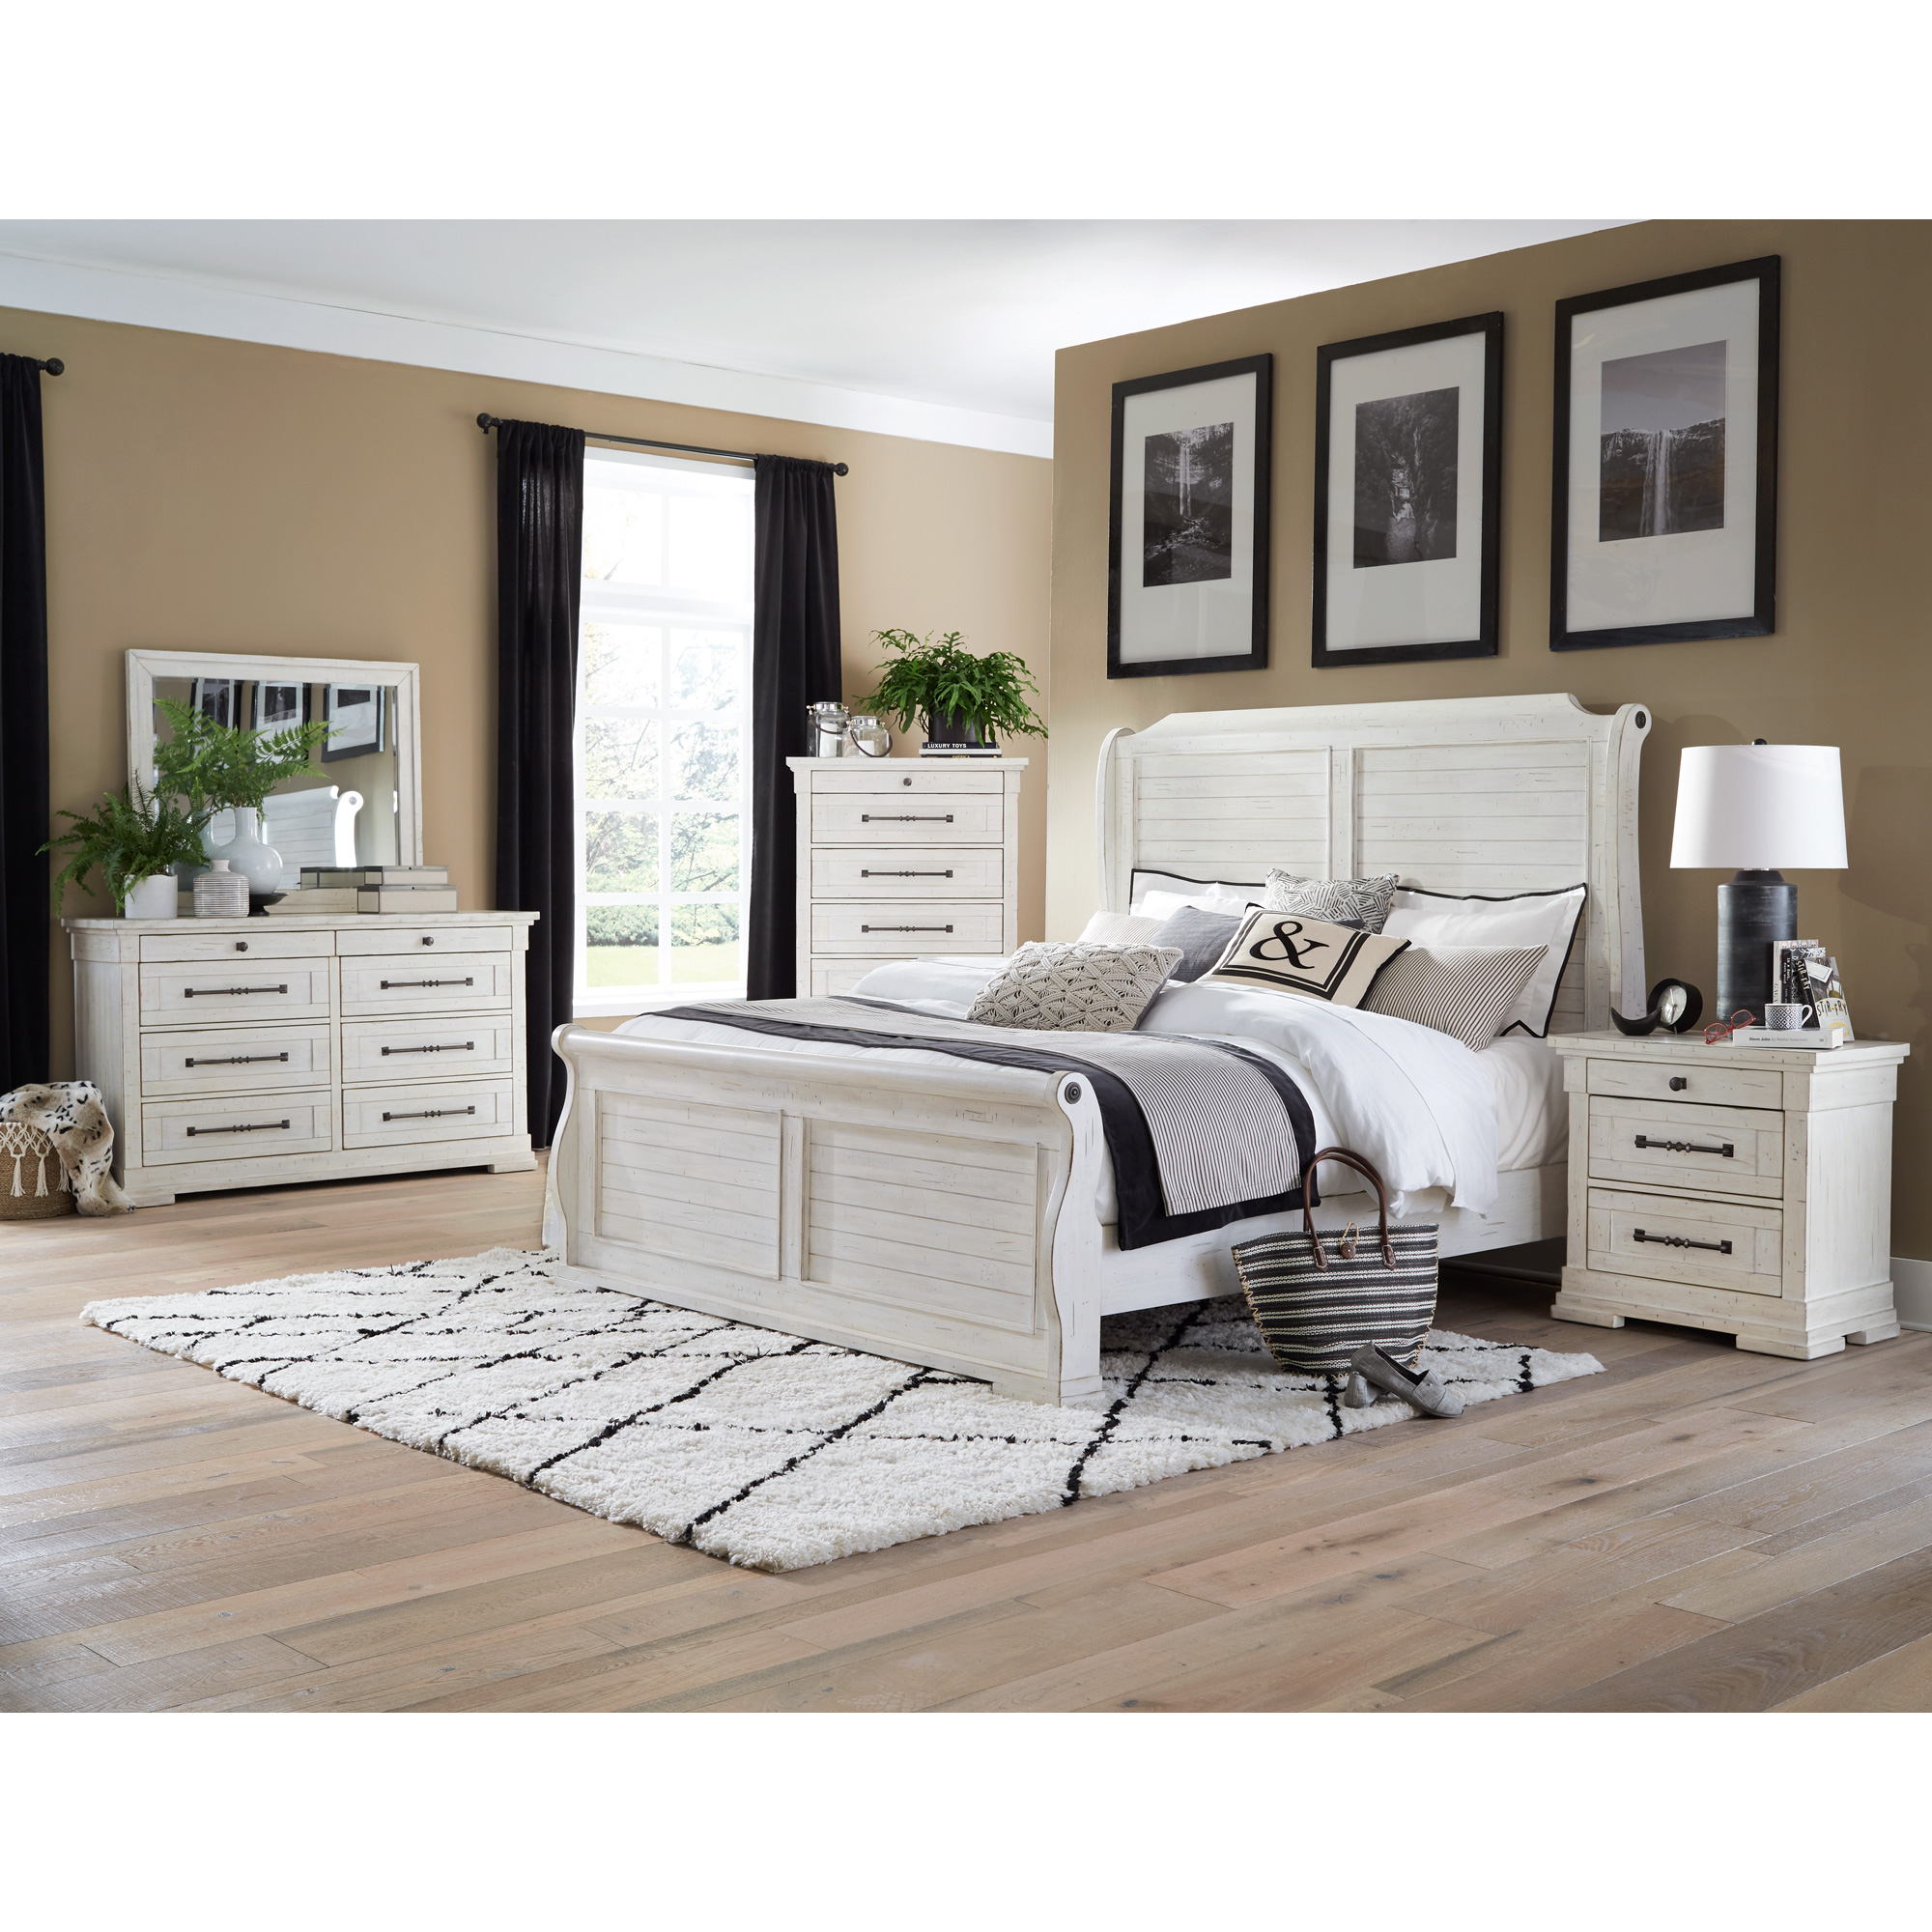 Lifestyle Enterprise | Bay Ridge White Queen 4 Piece Room Group Bedroom Set